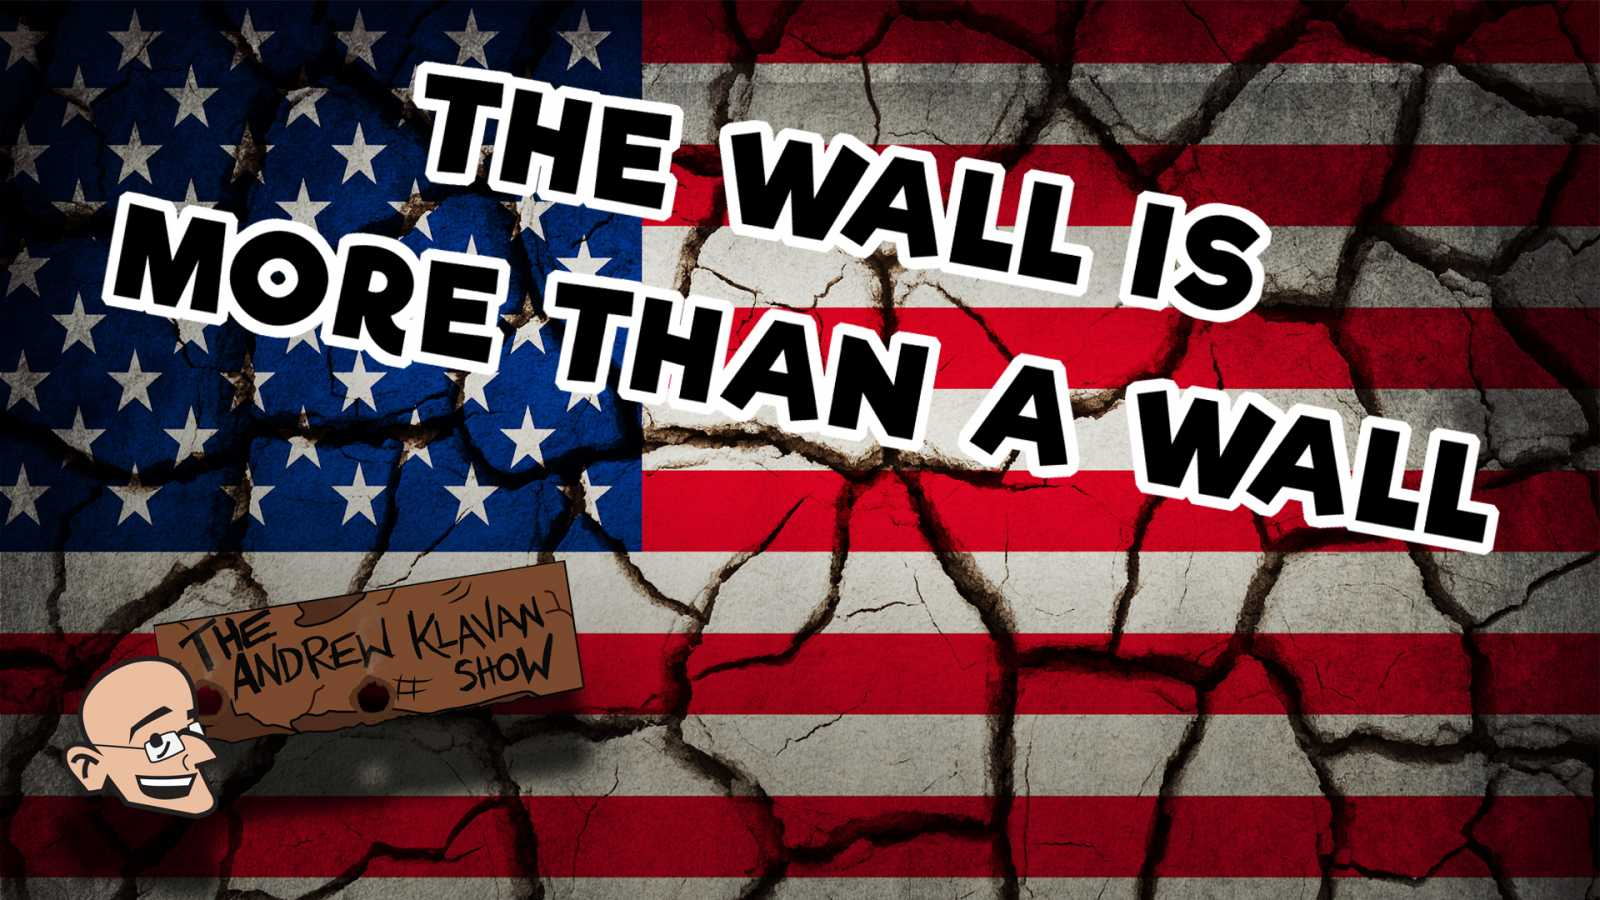 The Andrew Klavan Show on Daily Wire podcast: The Wall is More than a Wall (image)